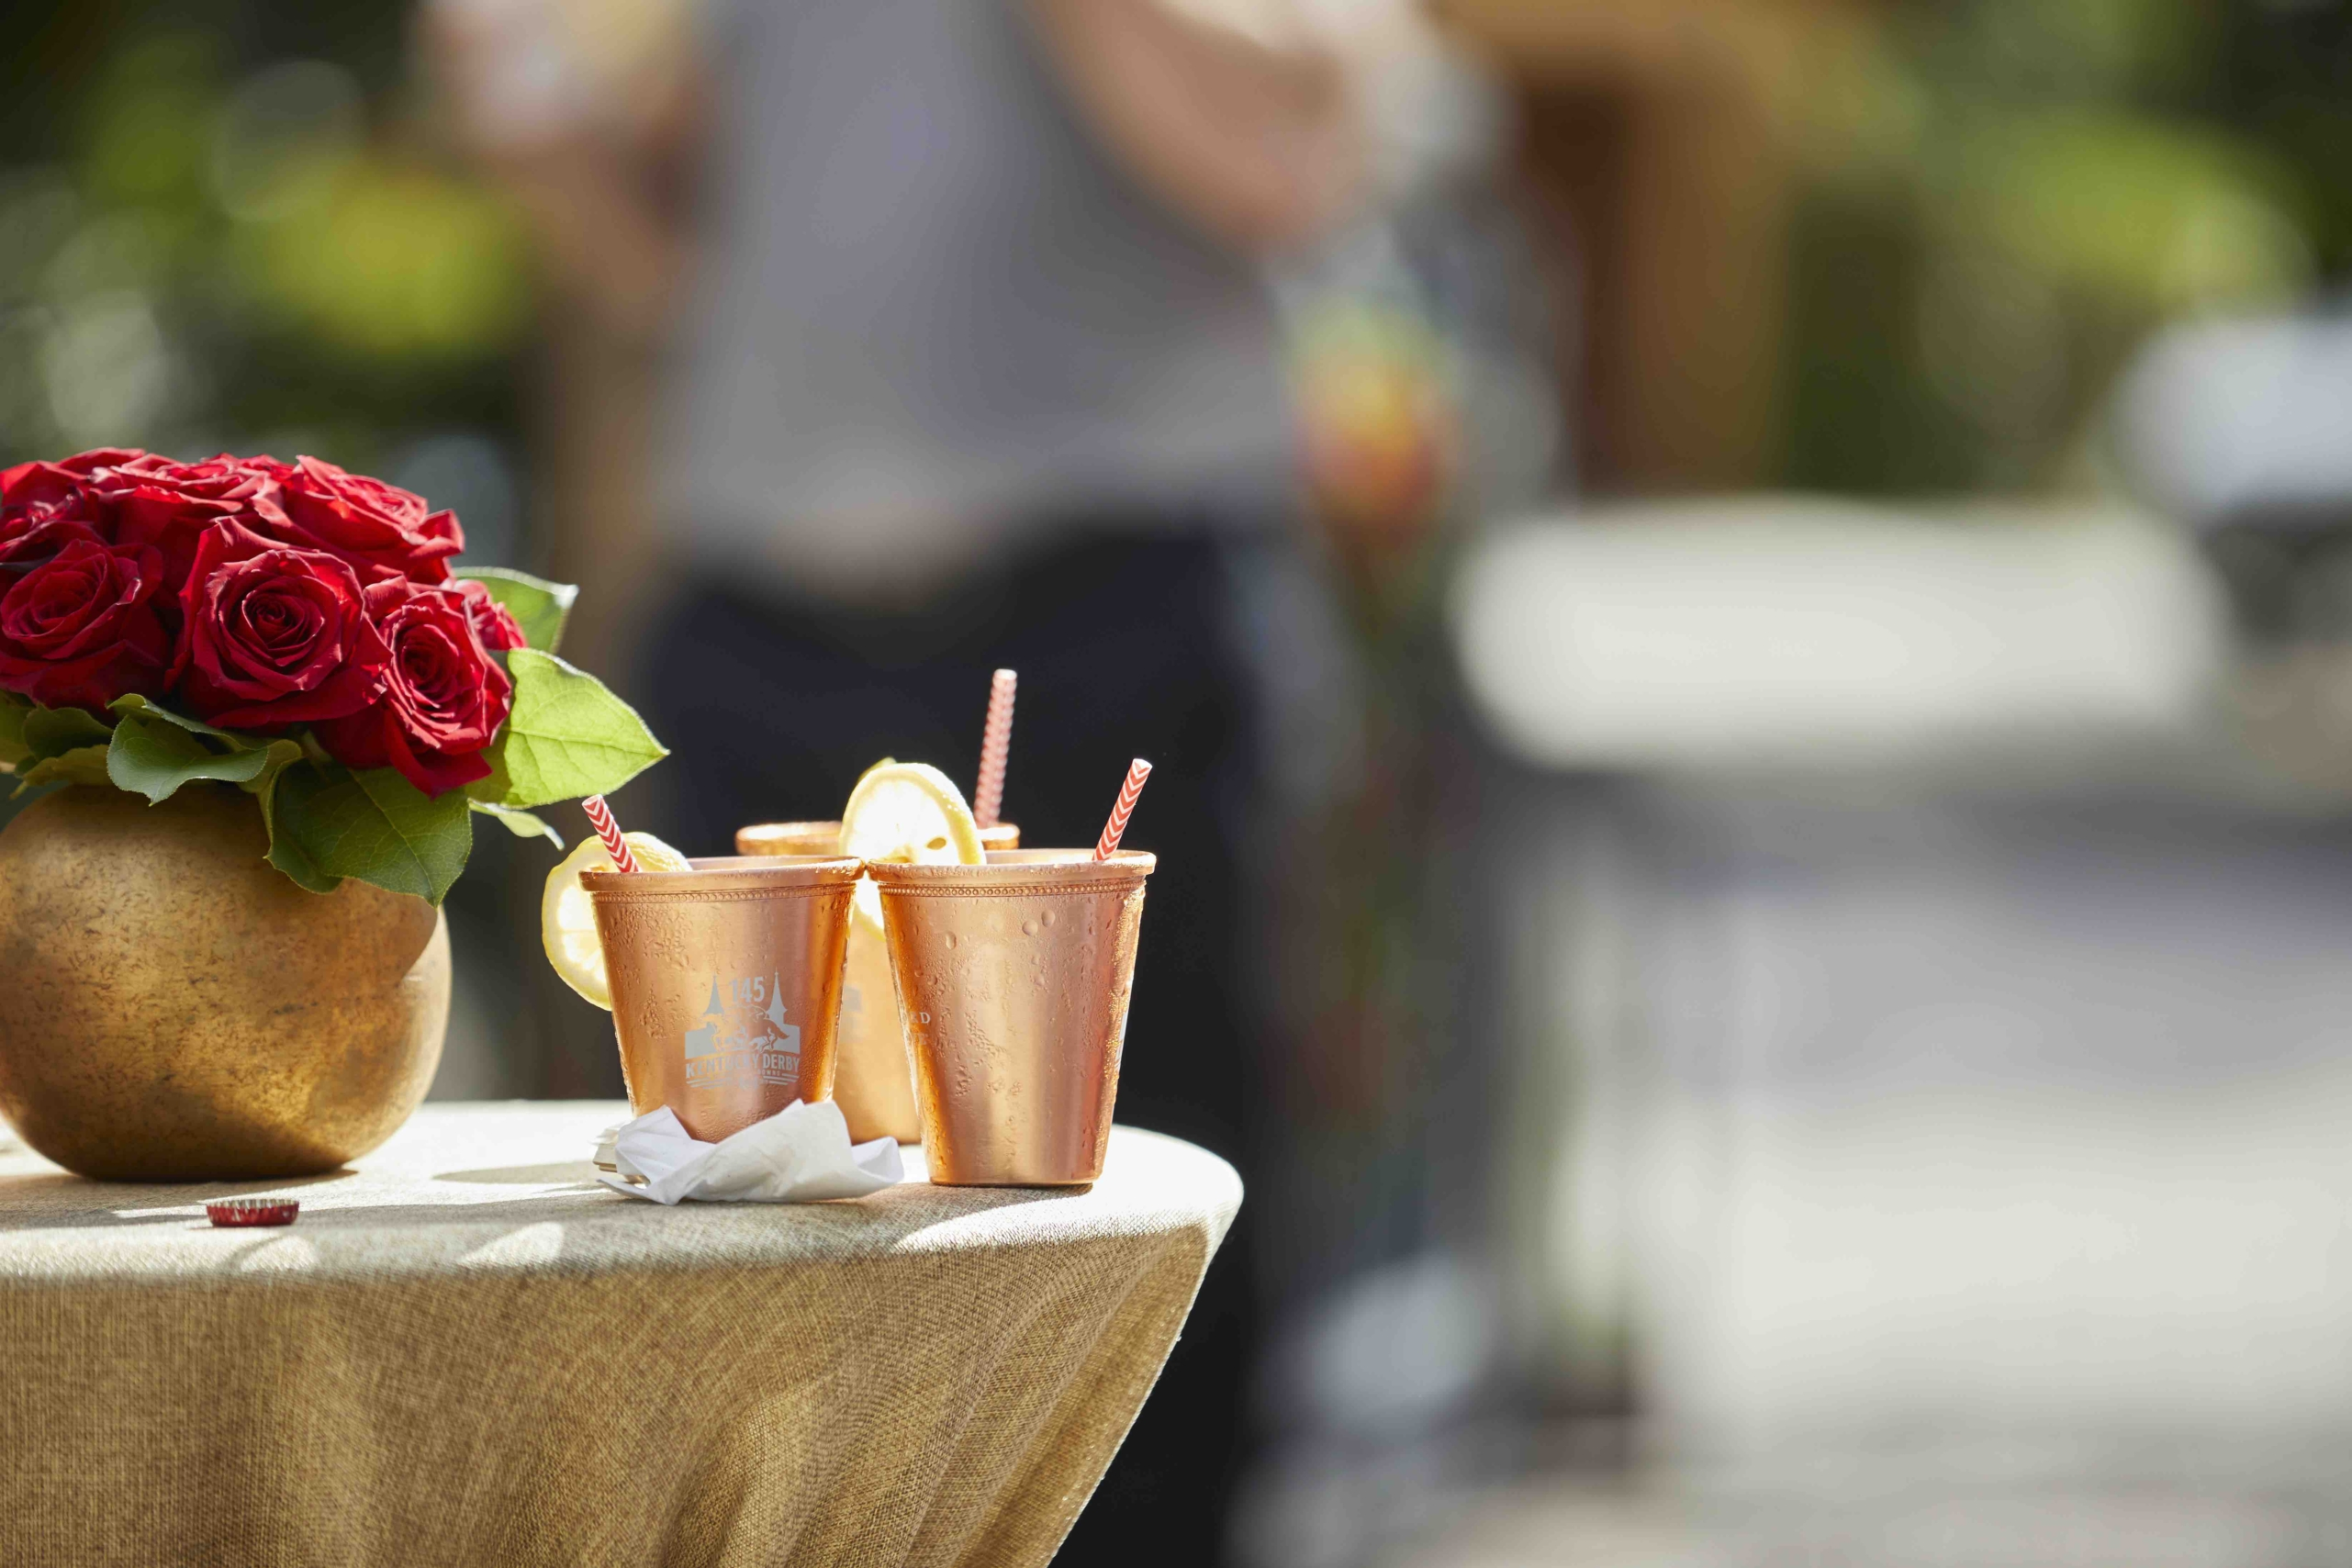 Celebrate Kentucky Derby Day With This Derby Mocktail Julep And More This Weekend